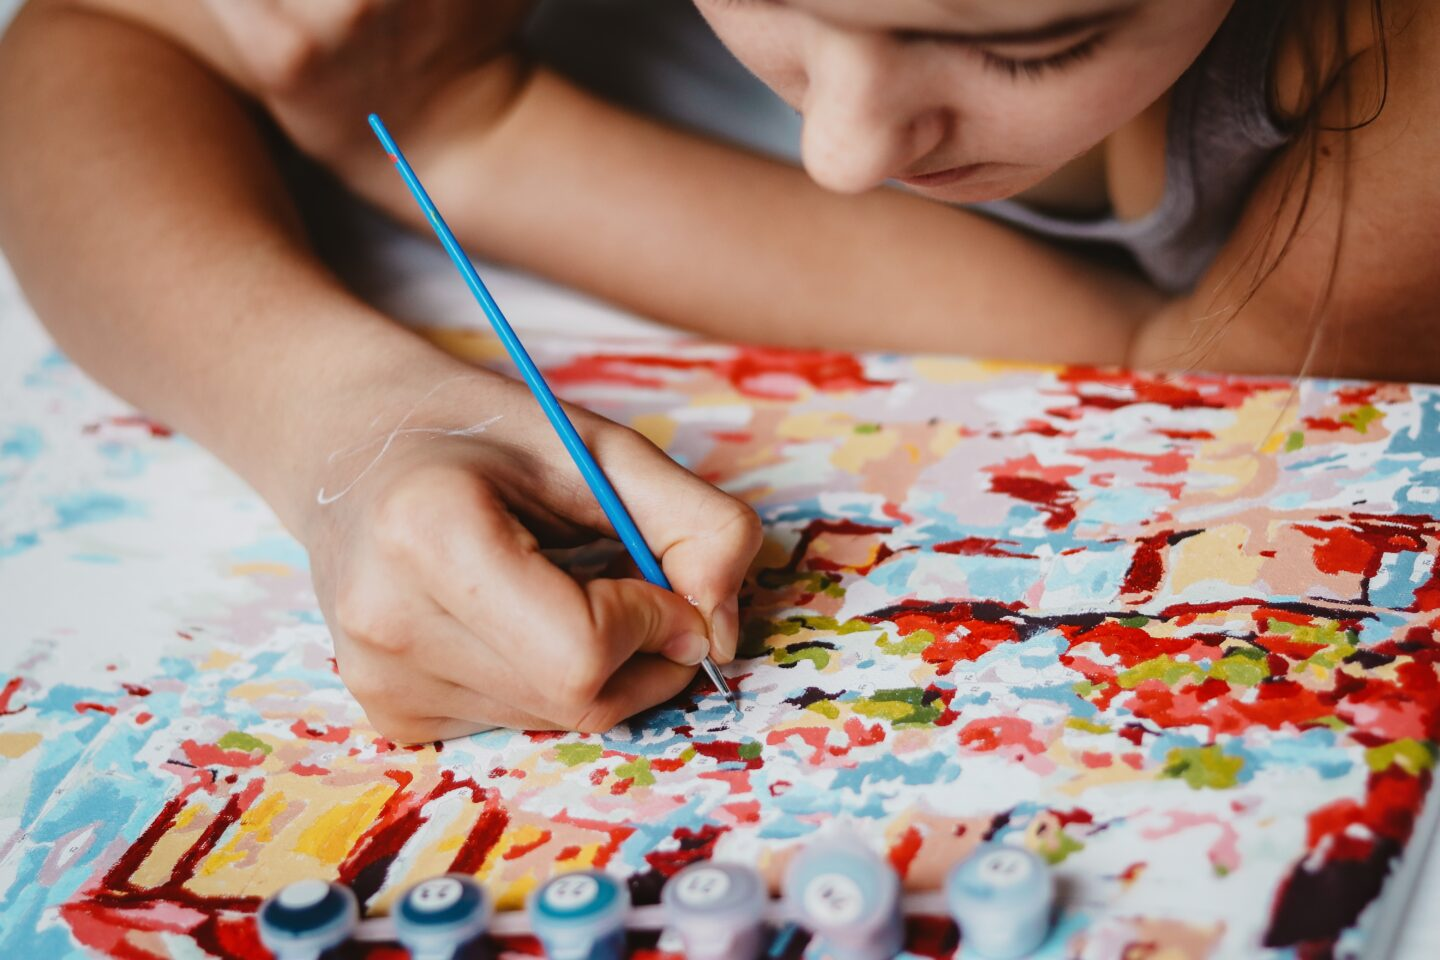 Looking for fun and cheap hobbies to try in college? Some of my favorite pastimes in college aren't expensive AT ALL! From drawing, coloring all the way to cooking and crocheting there is a lot you of fun skills you can learn in college to get the most of your college years #collegehobbies #college #cheaphobbies